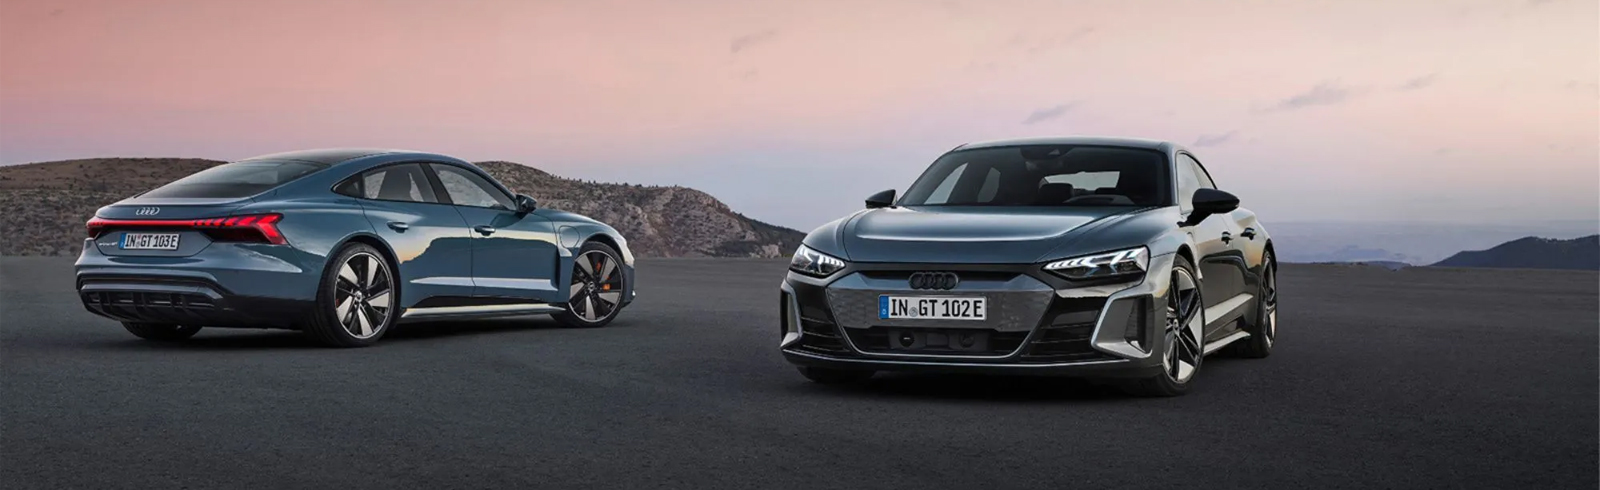 2022 Audi e-tron GT launches in the USA starting at $99,900 MSRP